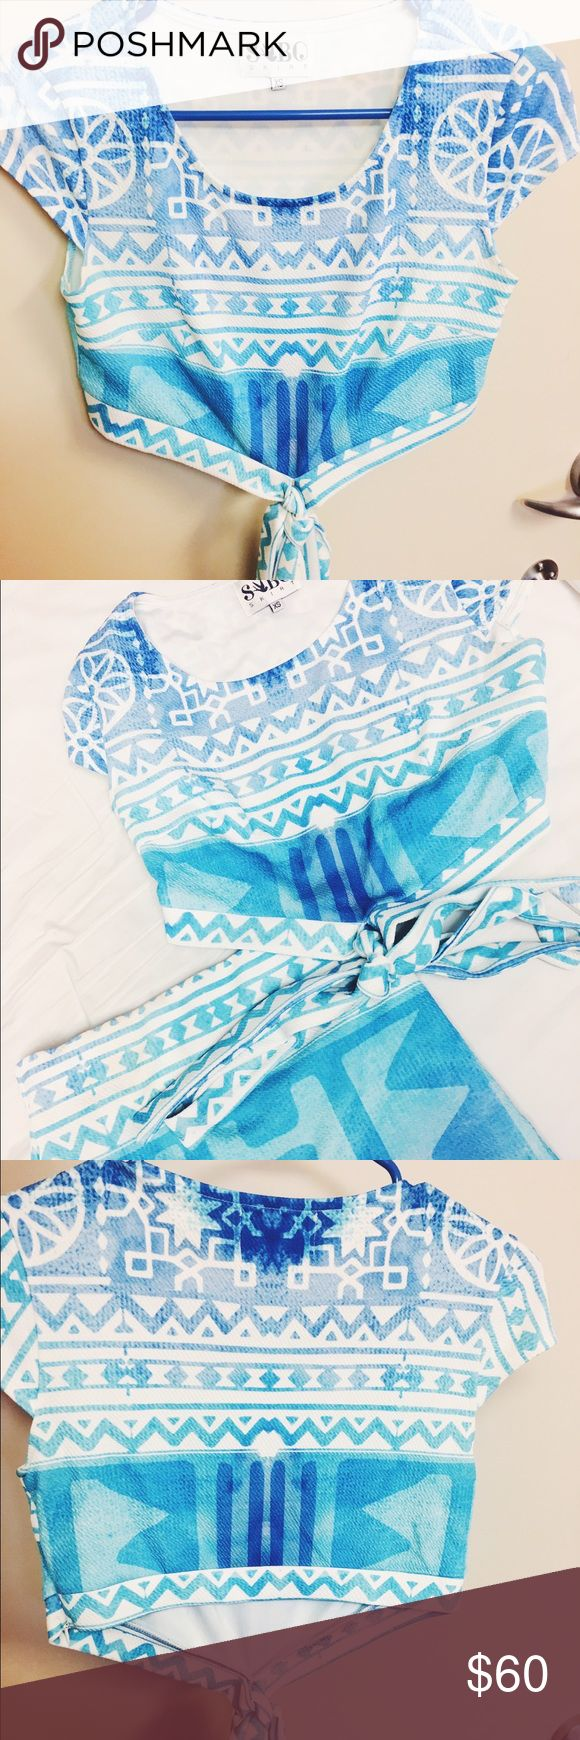 Sabo Skirt beach blue set This supper cute set is great for summer or a standout outfit. The top crosses in the front, for a great style effect and fits so comfortably. Worn 3-4 times, excellent condition! Sabo Skirt Tops Crop Tops